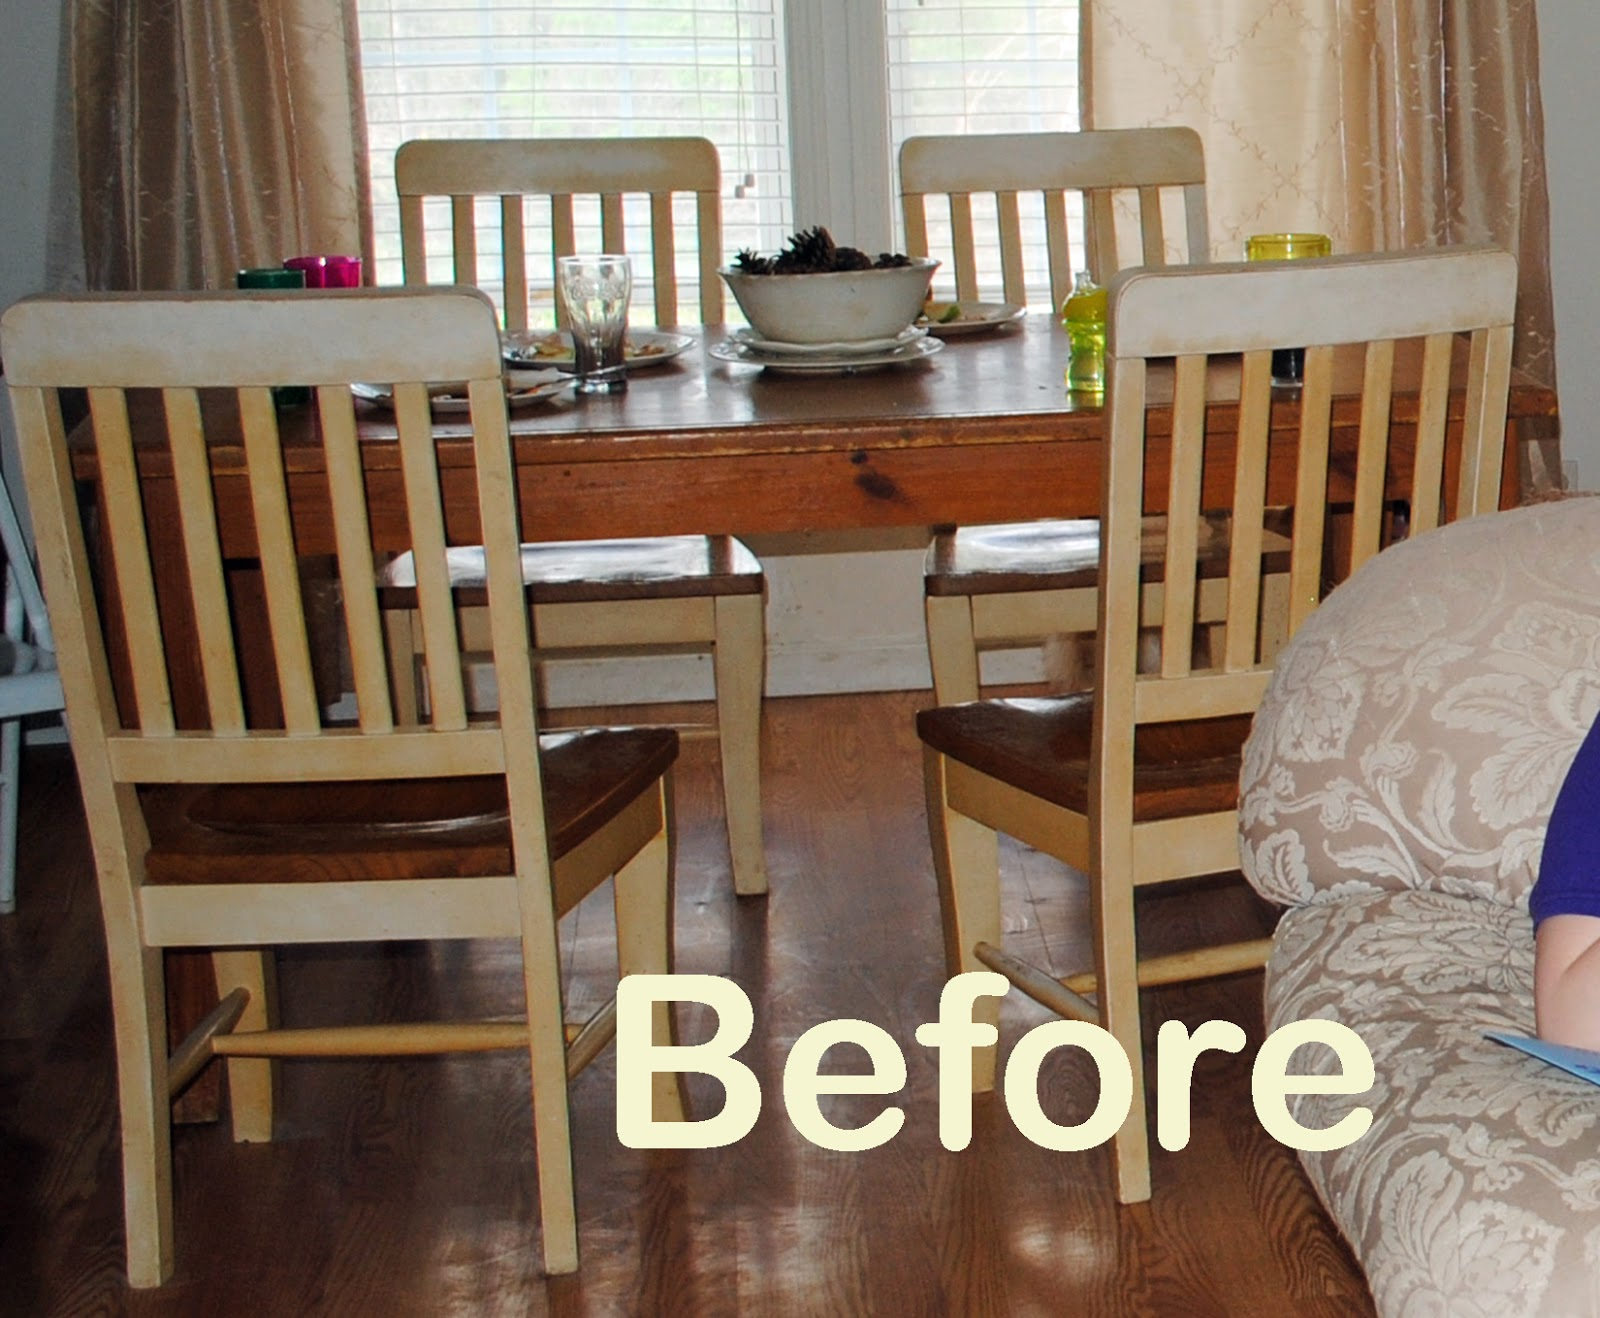 Refinish an Old Knotty Pine Dining Table  The Story. Runs with Scraps     Refinish an Old Knotty Pine Dining Table  The